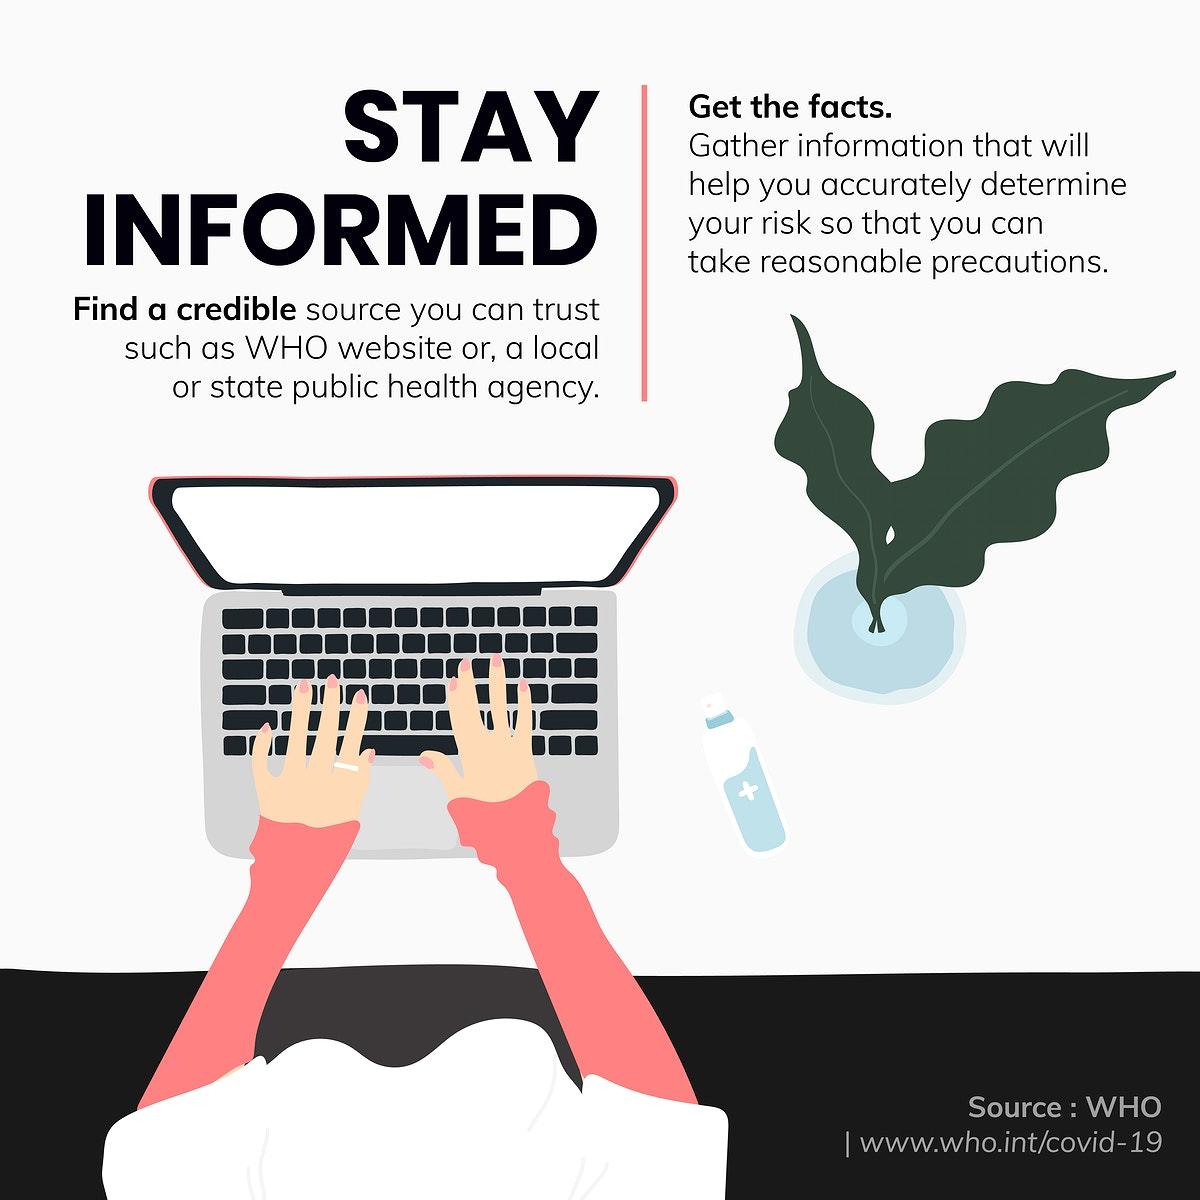 Stay informed and get the facts during coronavirus outbreak social template source WHO vector